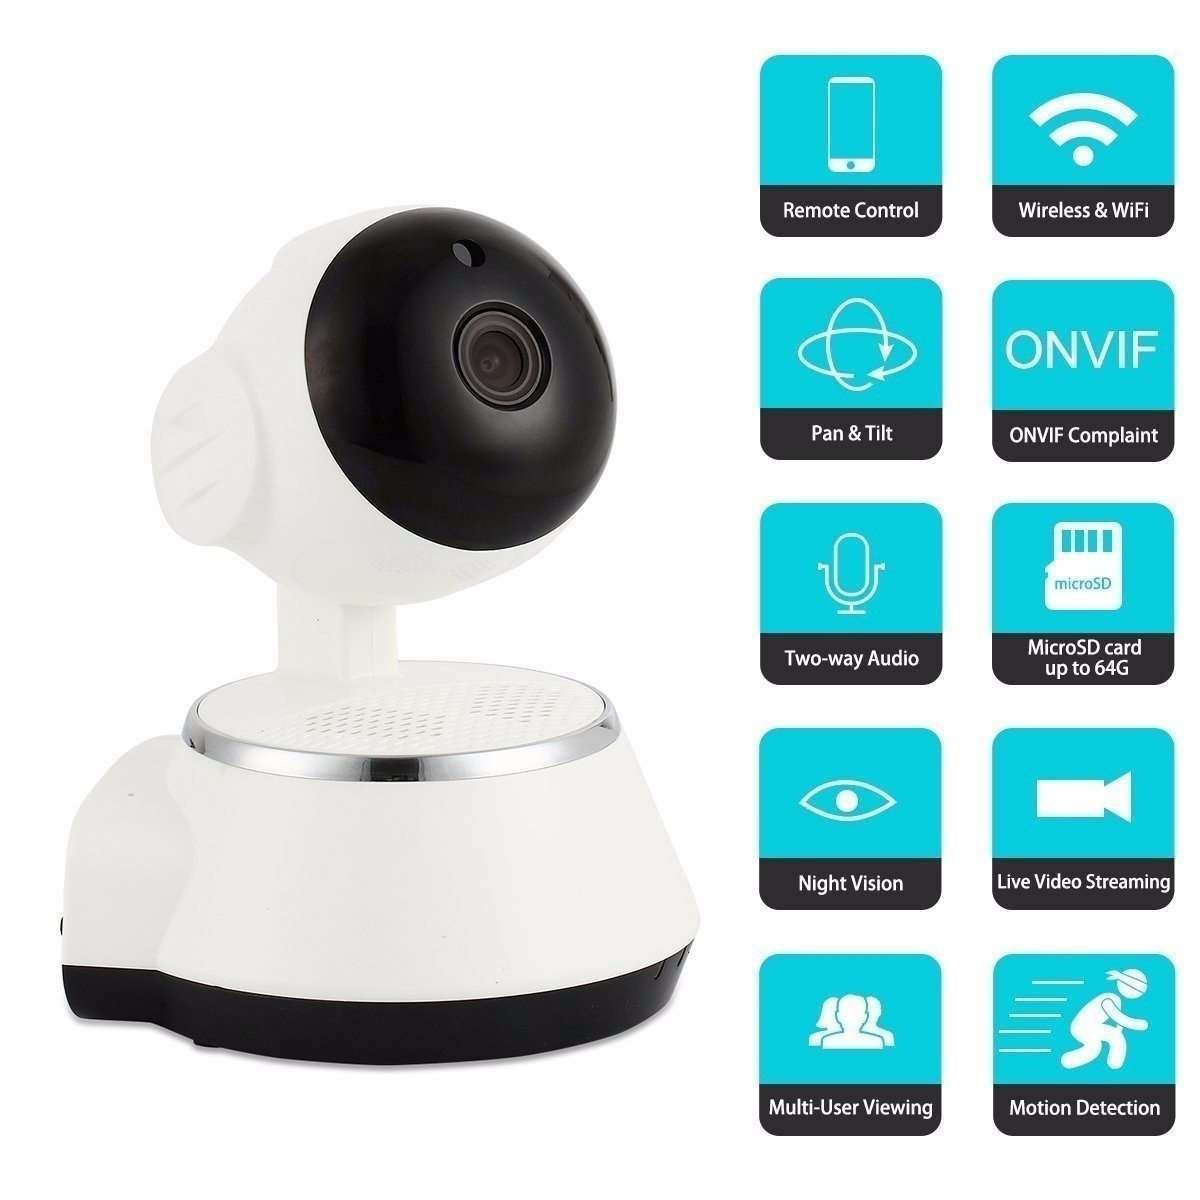 Wireless Monitor, M.Way Vide Wifi Monitor HD 720P Remote Home Security Camera Night Vision WIFI Webcam - Vendu a des clients avises. (NOT AN IP CAMERA)